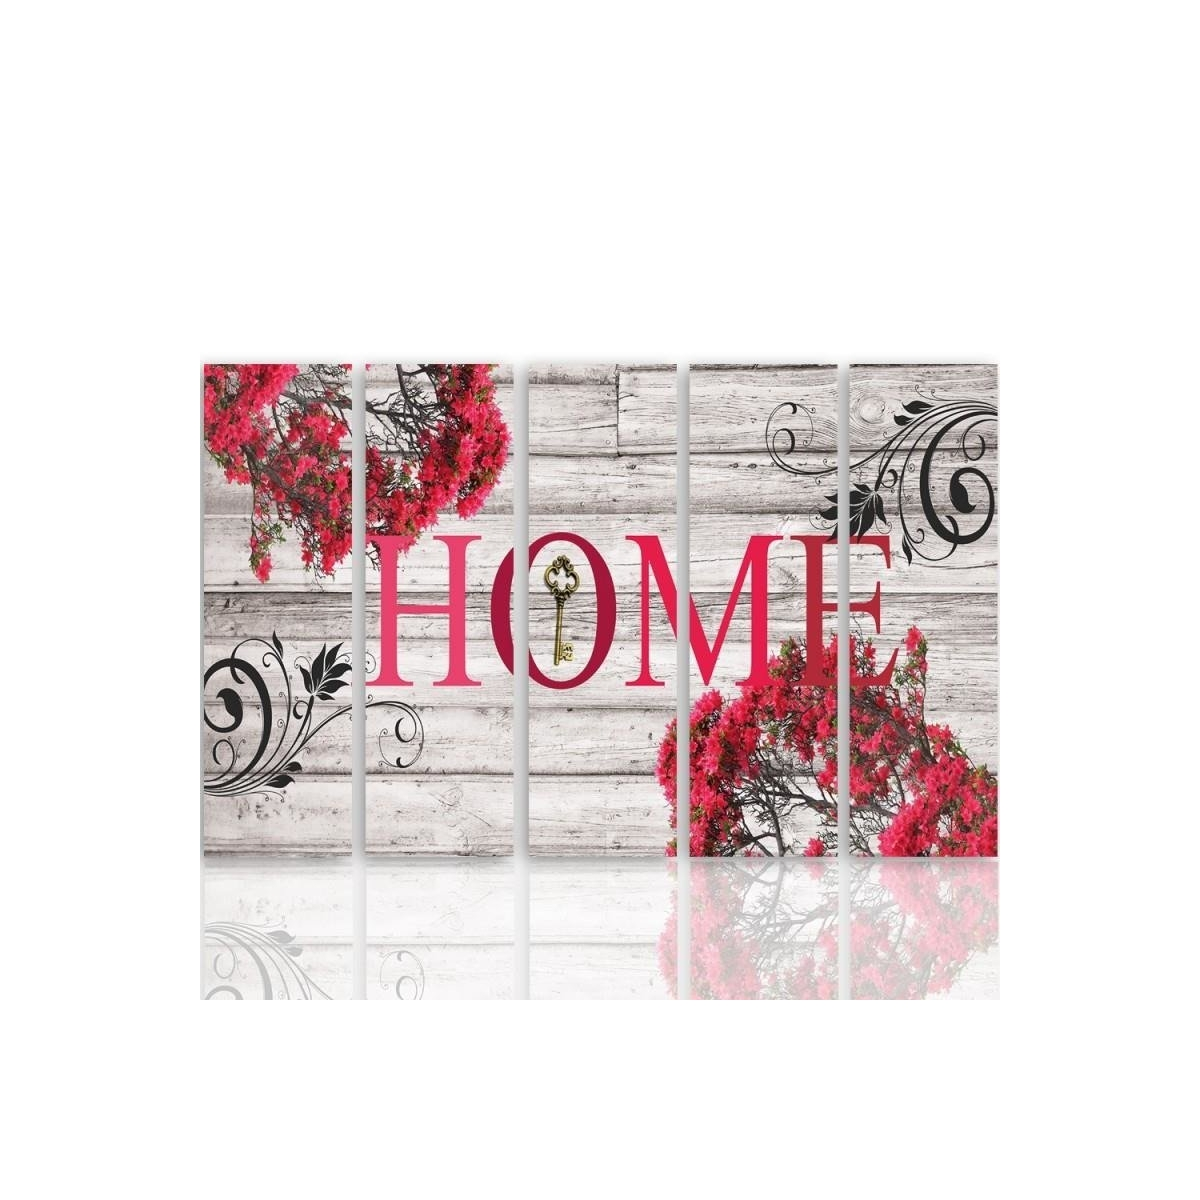 Five Part Picture On Canvas, Pentaptych, Type C, Inscription Home With Flowers 2100x150